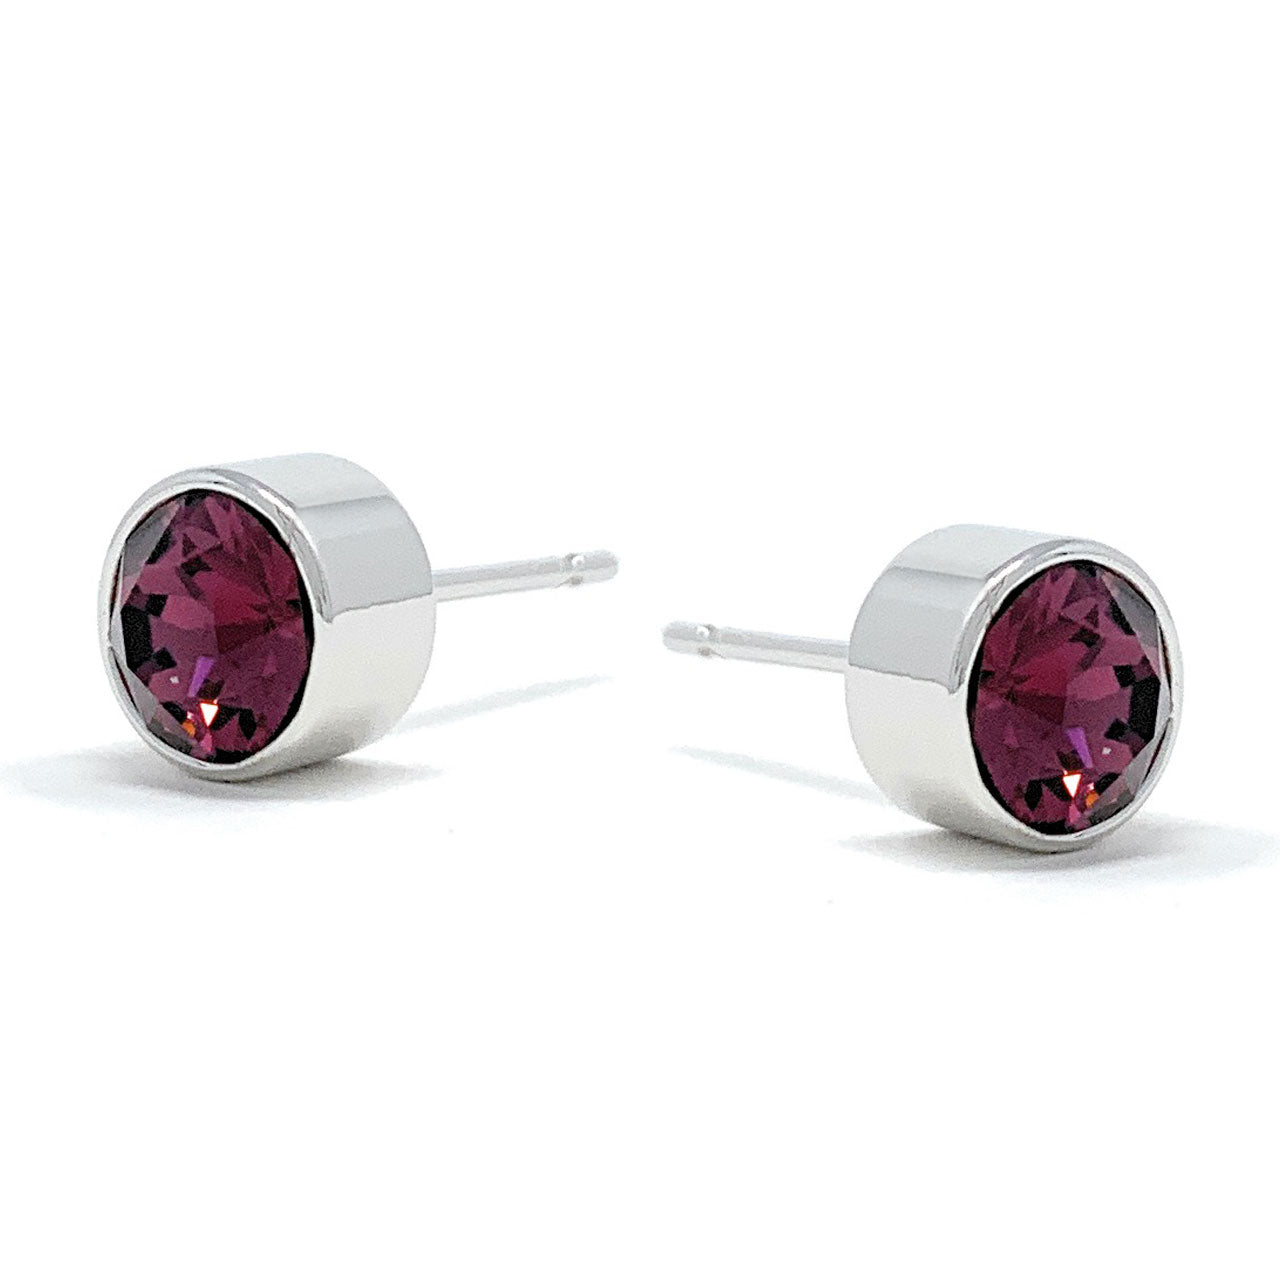 Harley Small Stud Earrings with Purple Amethyst Round Crystals from Swarovski Silver Toned Rhodium Plated - Ed Heart